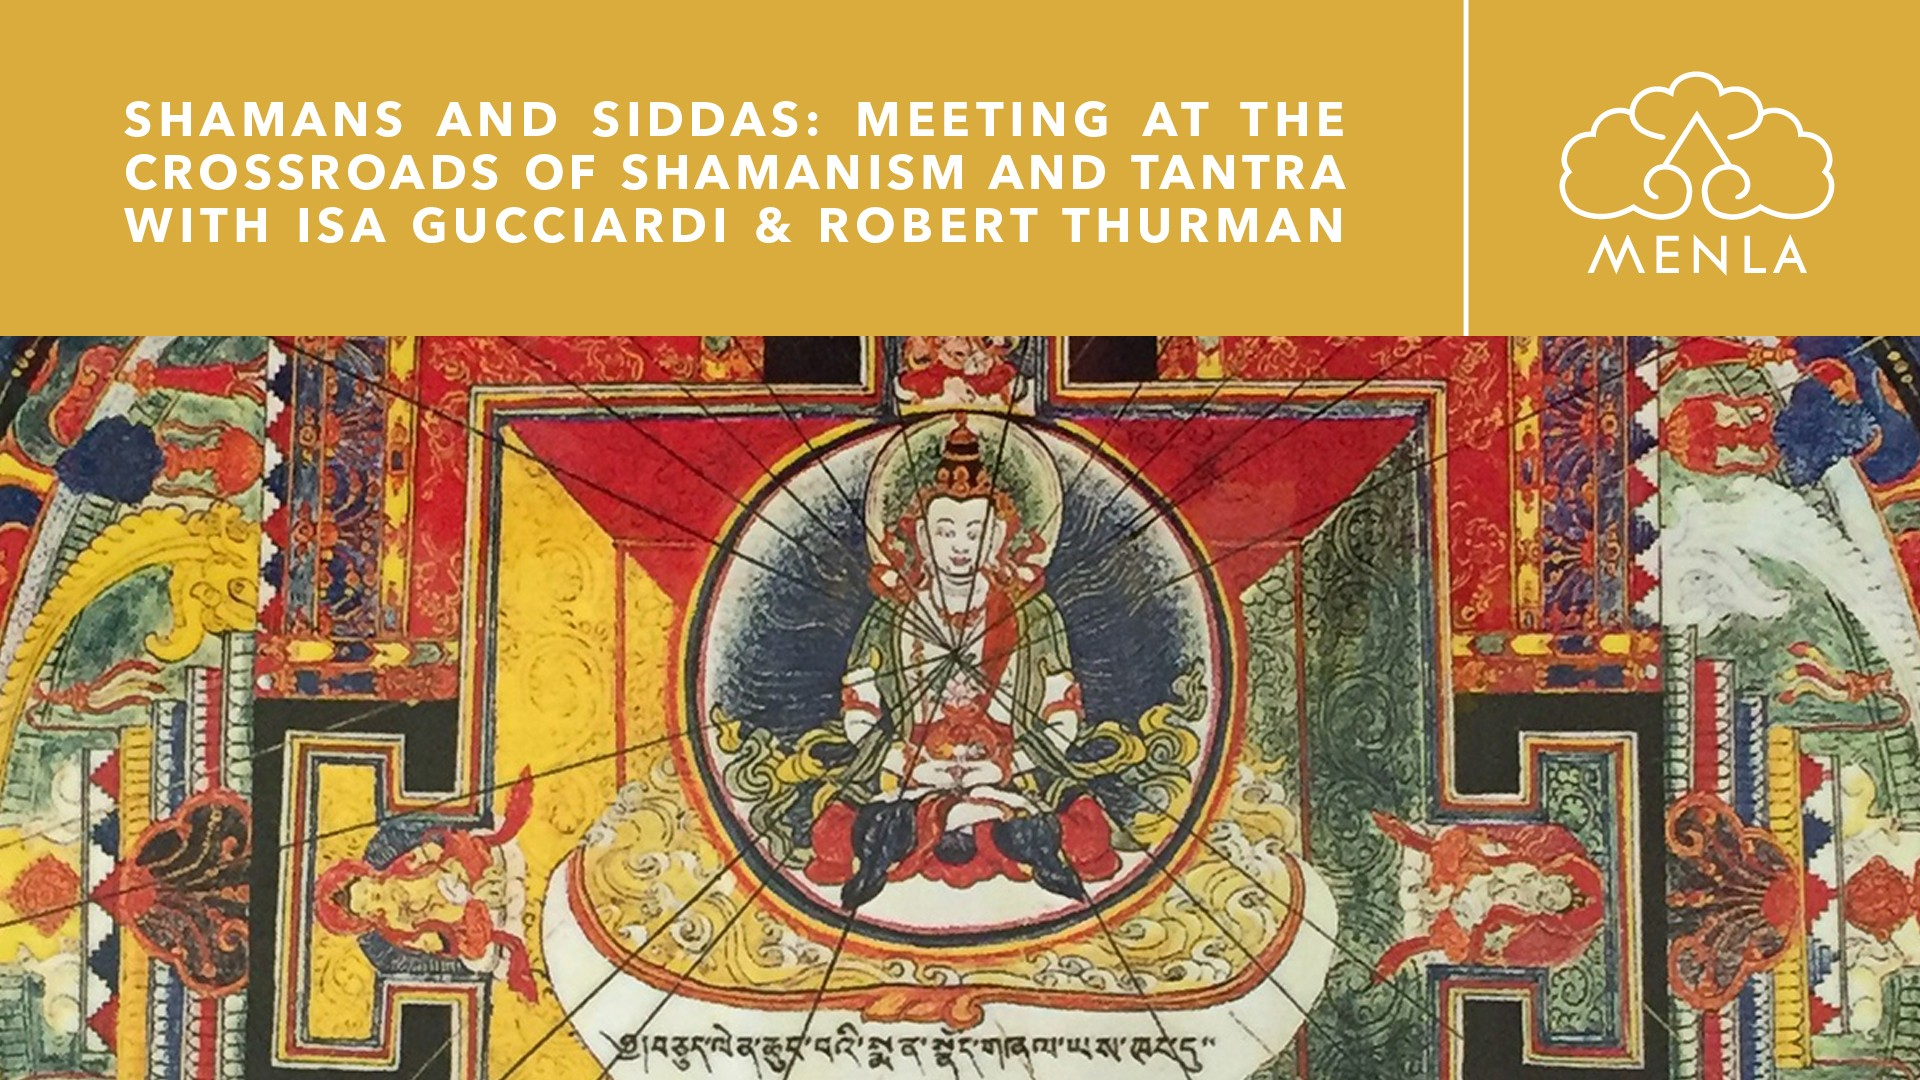 Shamans & Siddhas: Meeting at the Crossroads of Shamanism & Tantra 2019 Menla Retreat Phoenicia, NY